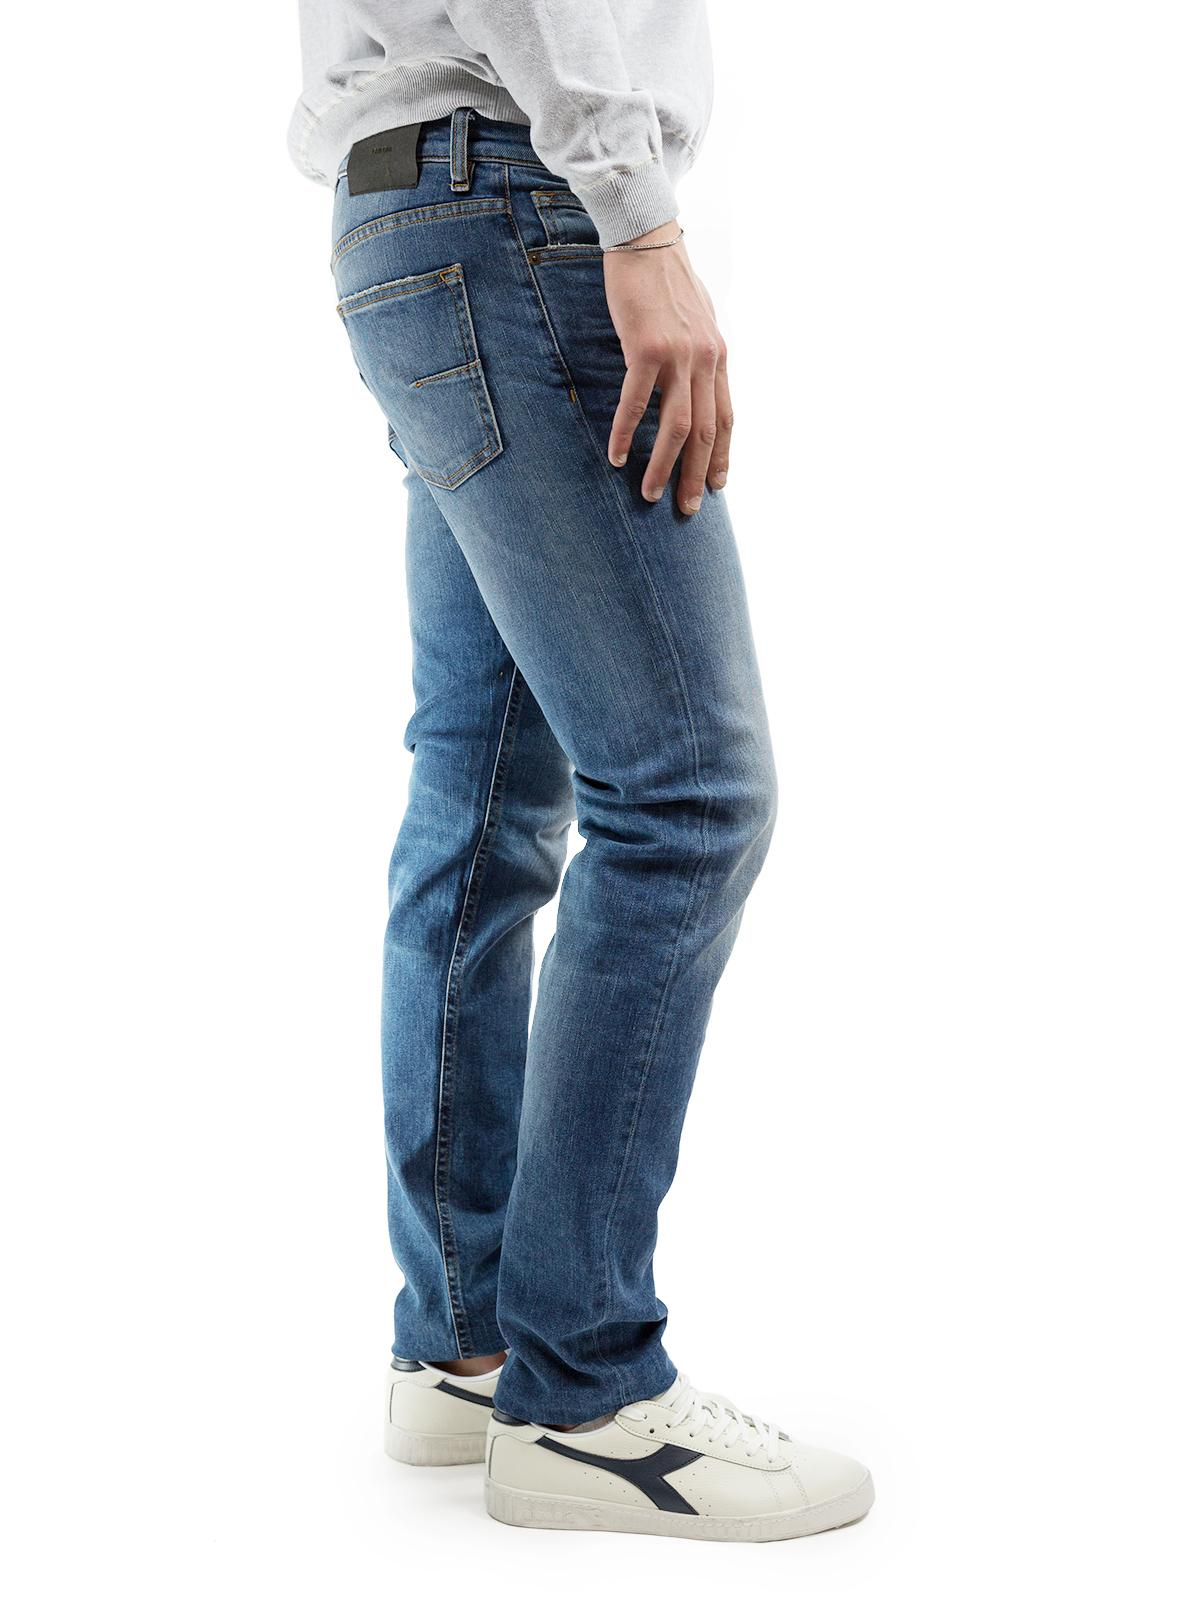 Grifoni Jeans GB14022 64 M03